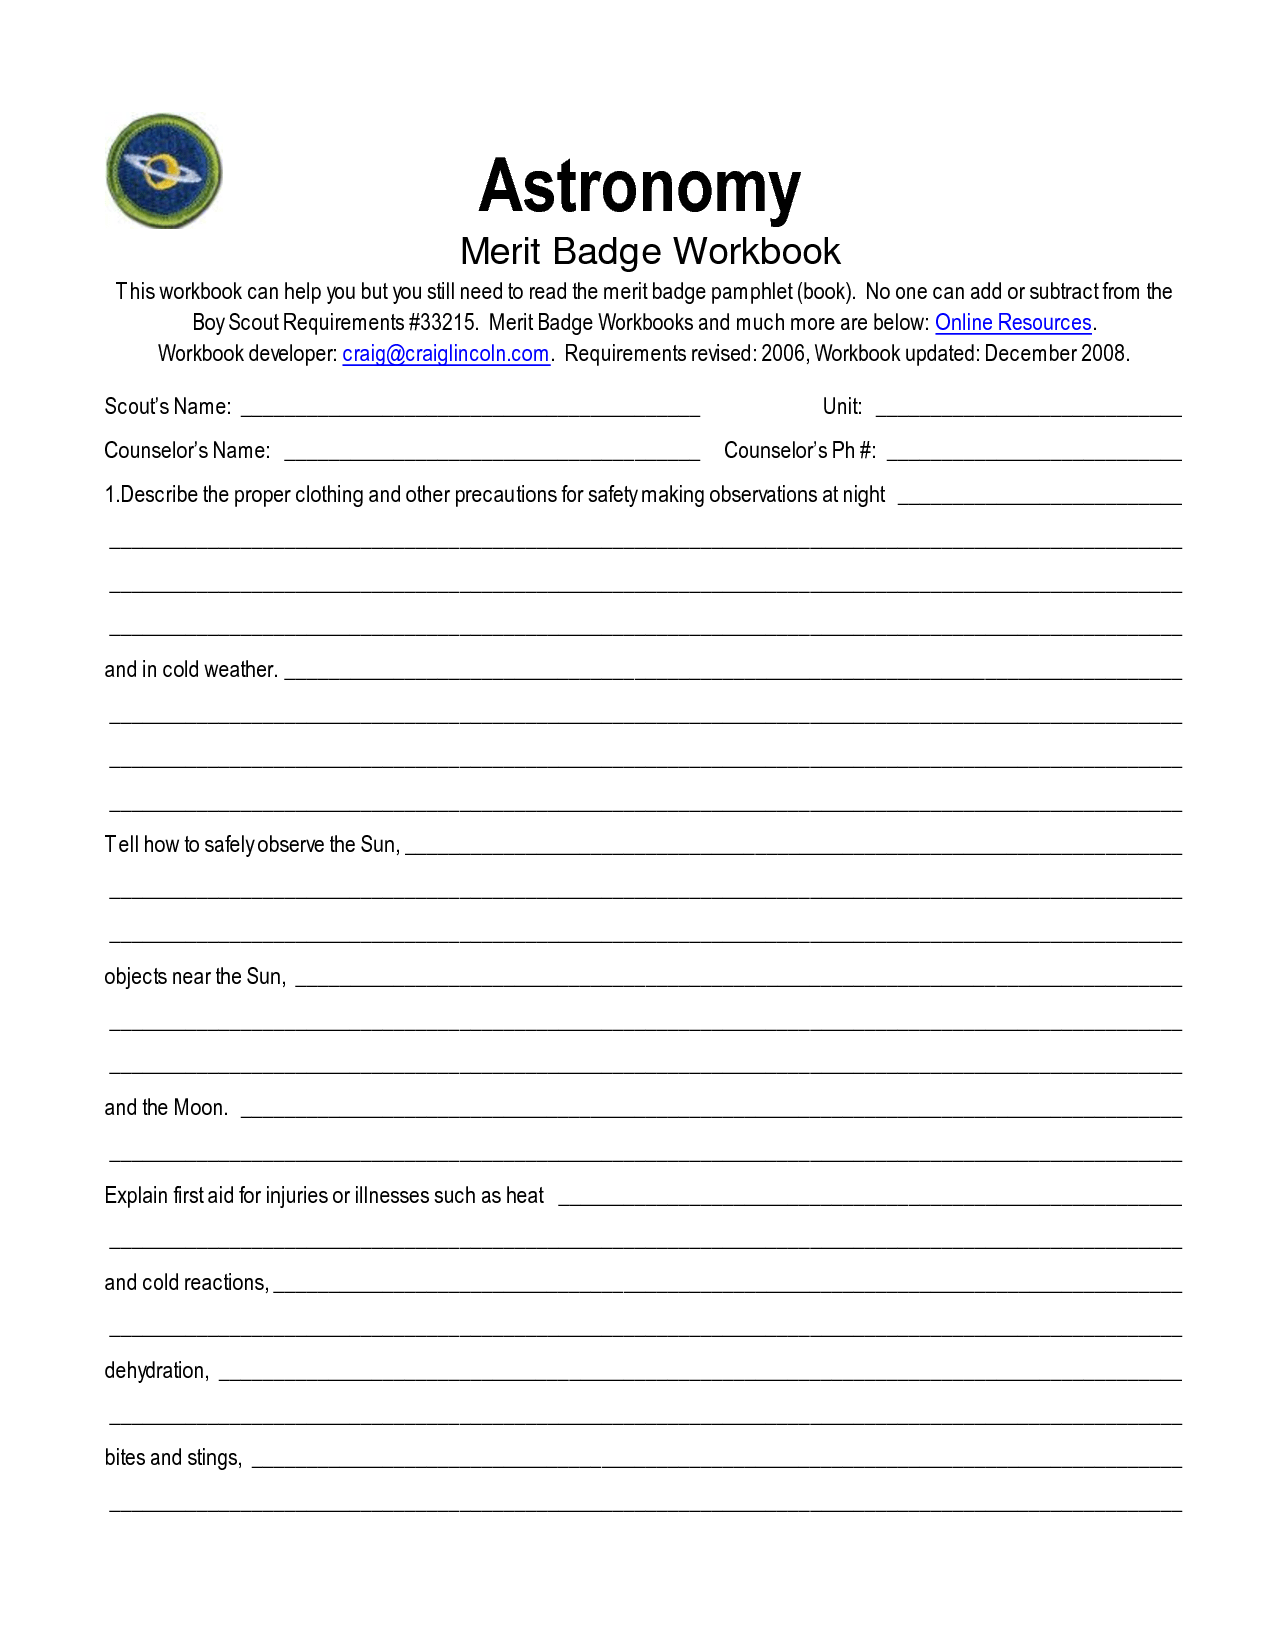 10 Best Images Of Astronomy Worksheets Printable